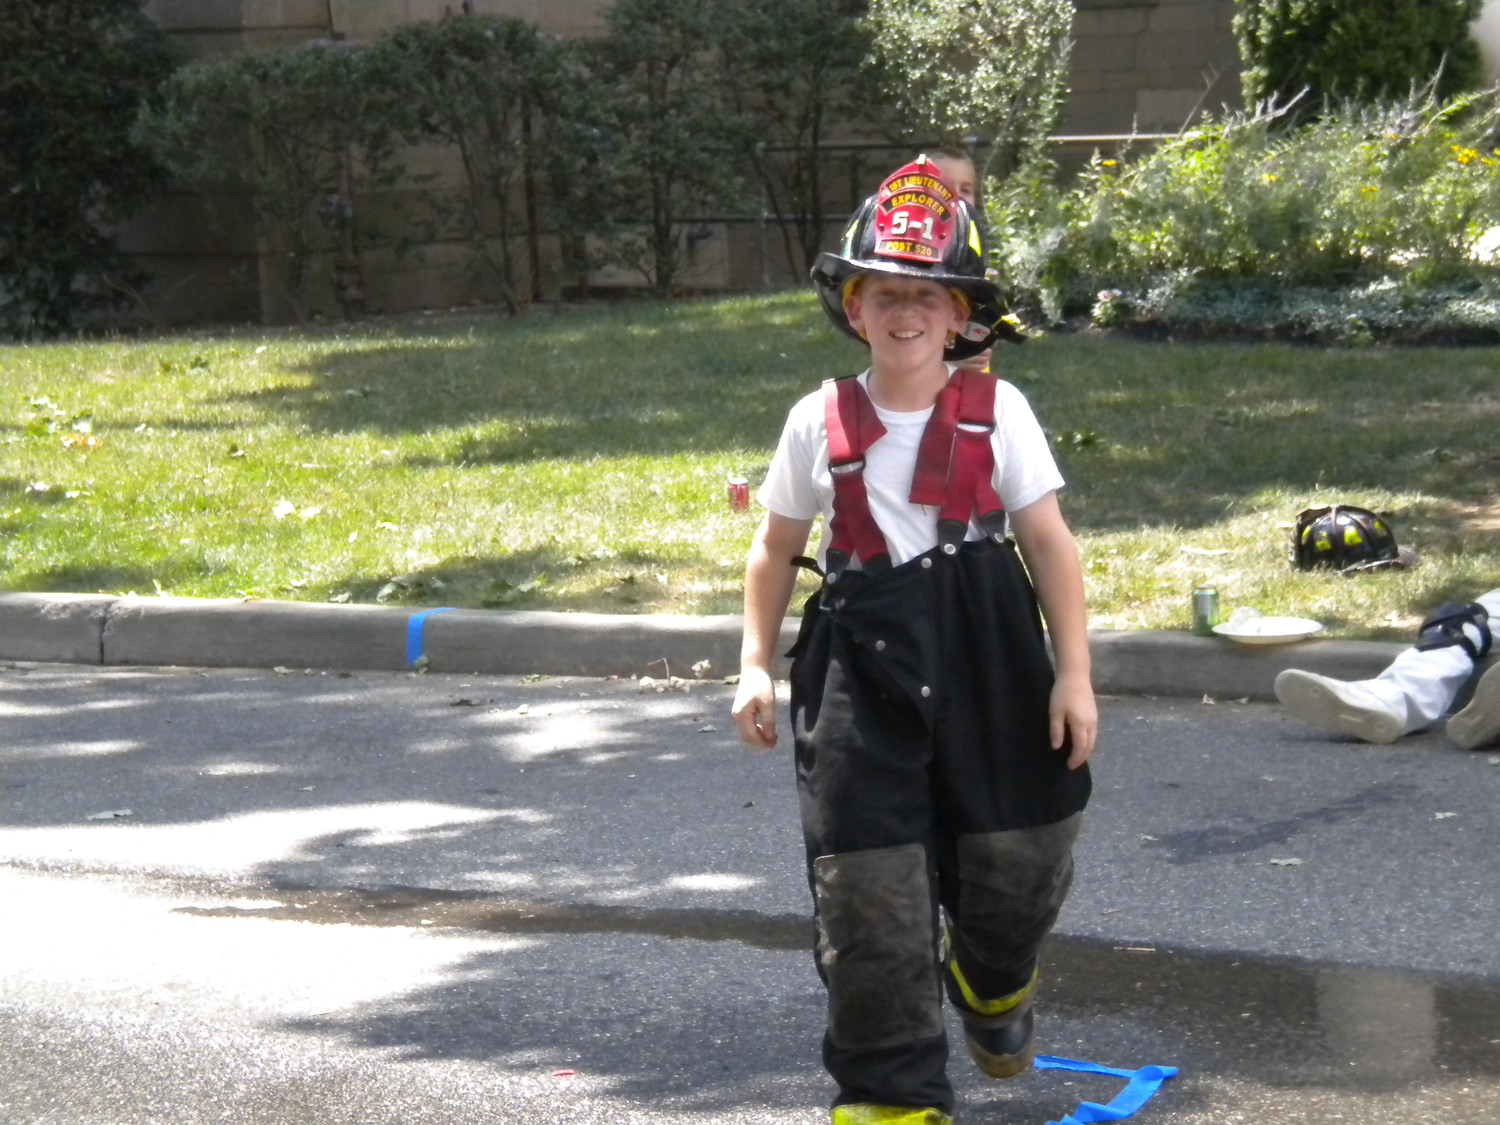 This Fire Explorer could have used some smaller britches.